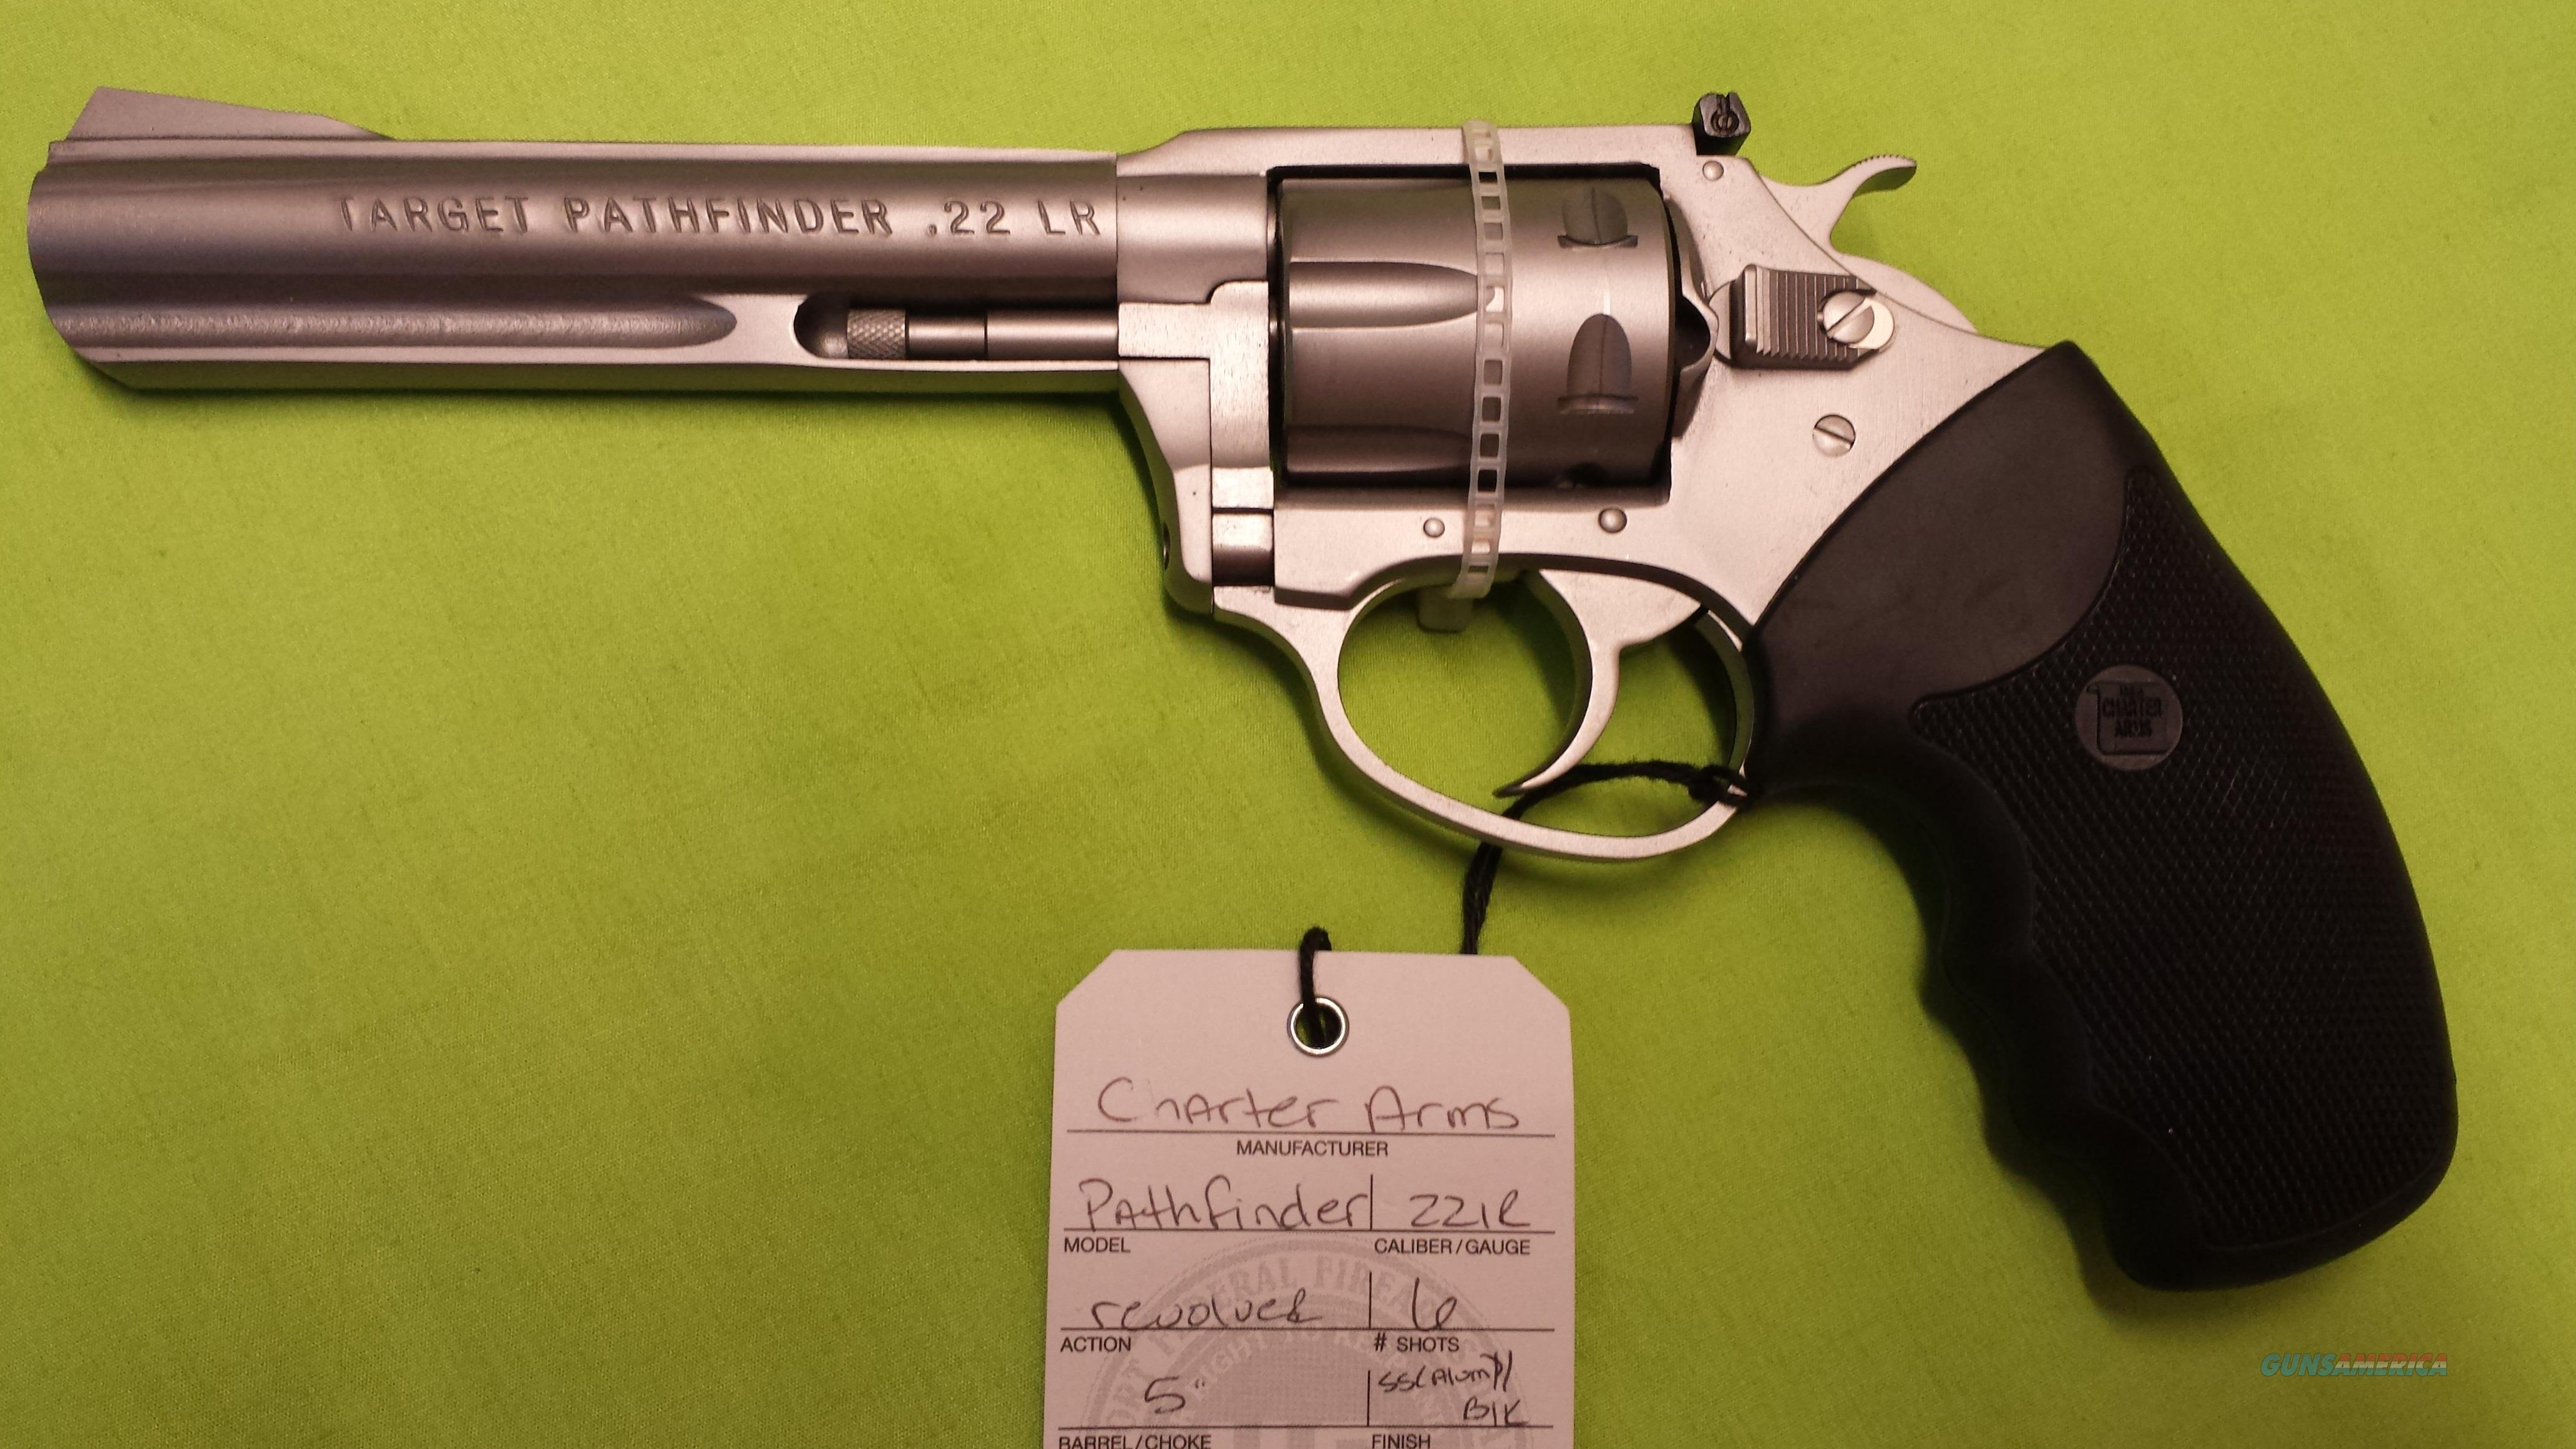 "CHARTER PATHFINDER 22 LR REVOLVER 5"" STAINLESS  Guns > Pistols > Charter Arms Revolvers"